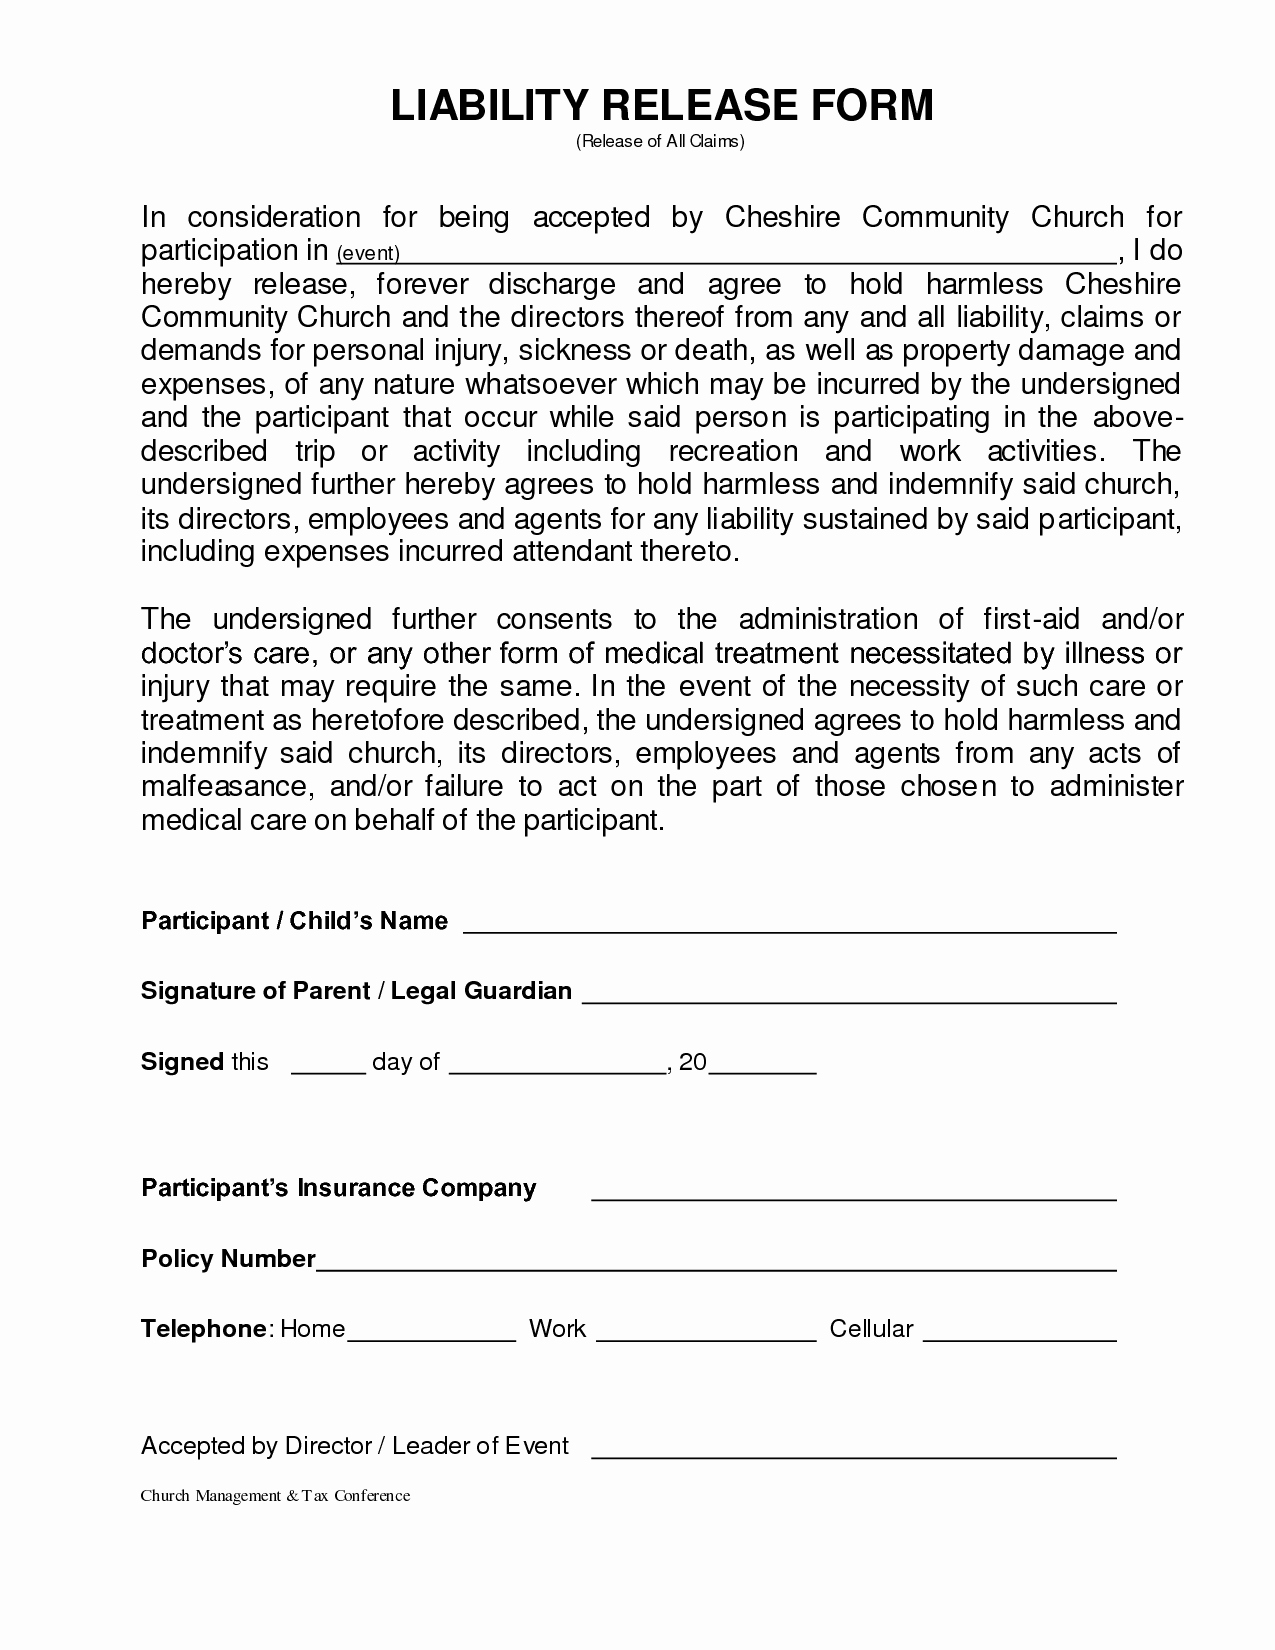 Personal Property Release form Template New General Liability Release form Template Pics – General